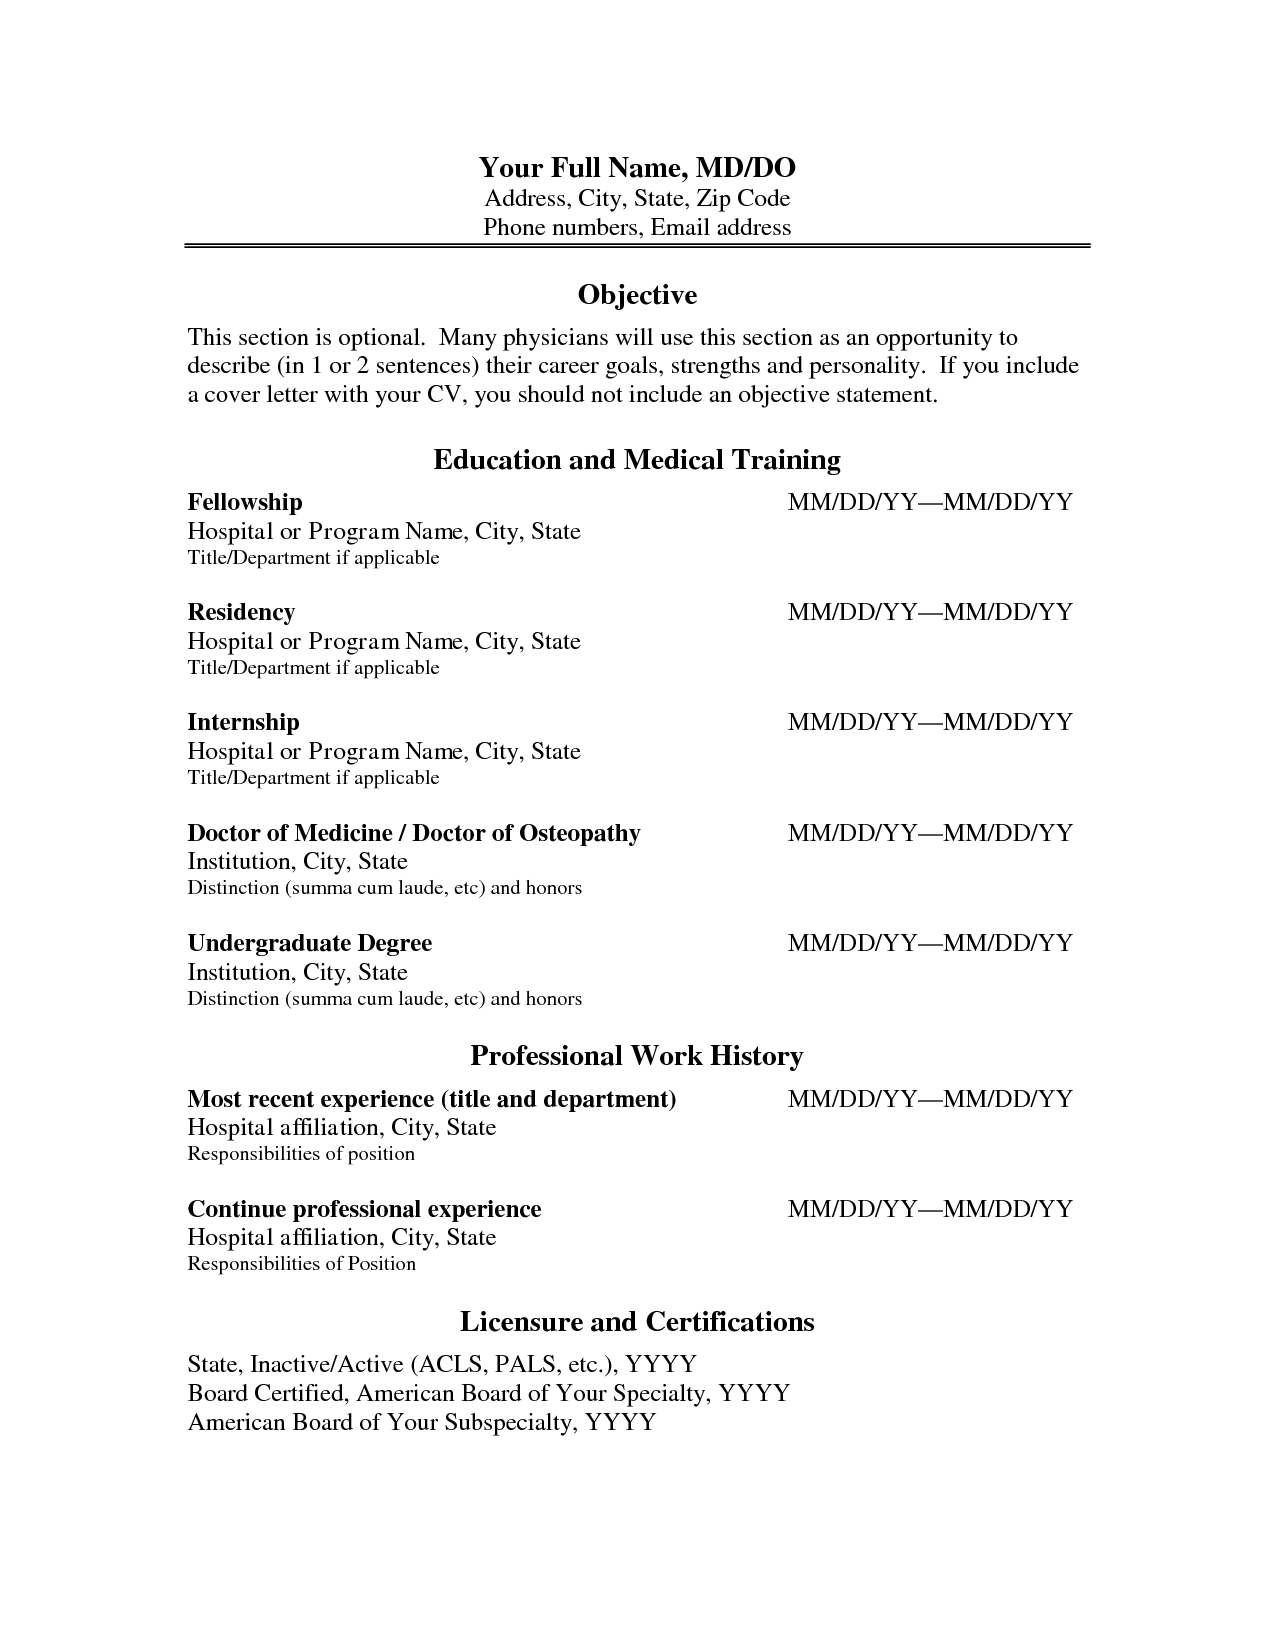 Cv Format Physician Assistant Resume And Curriculum Vitae